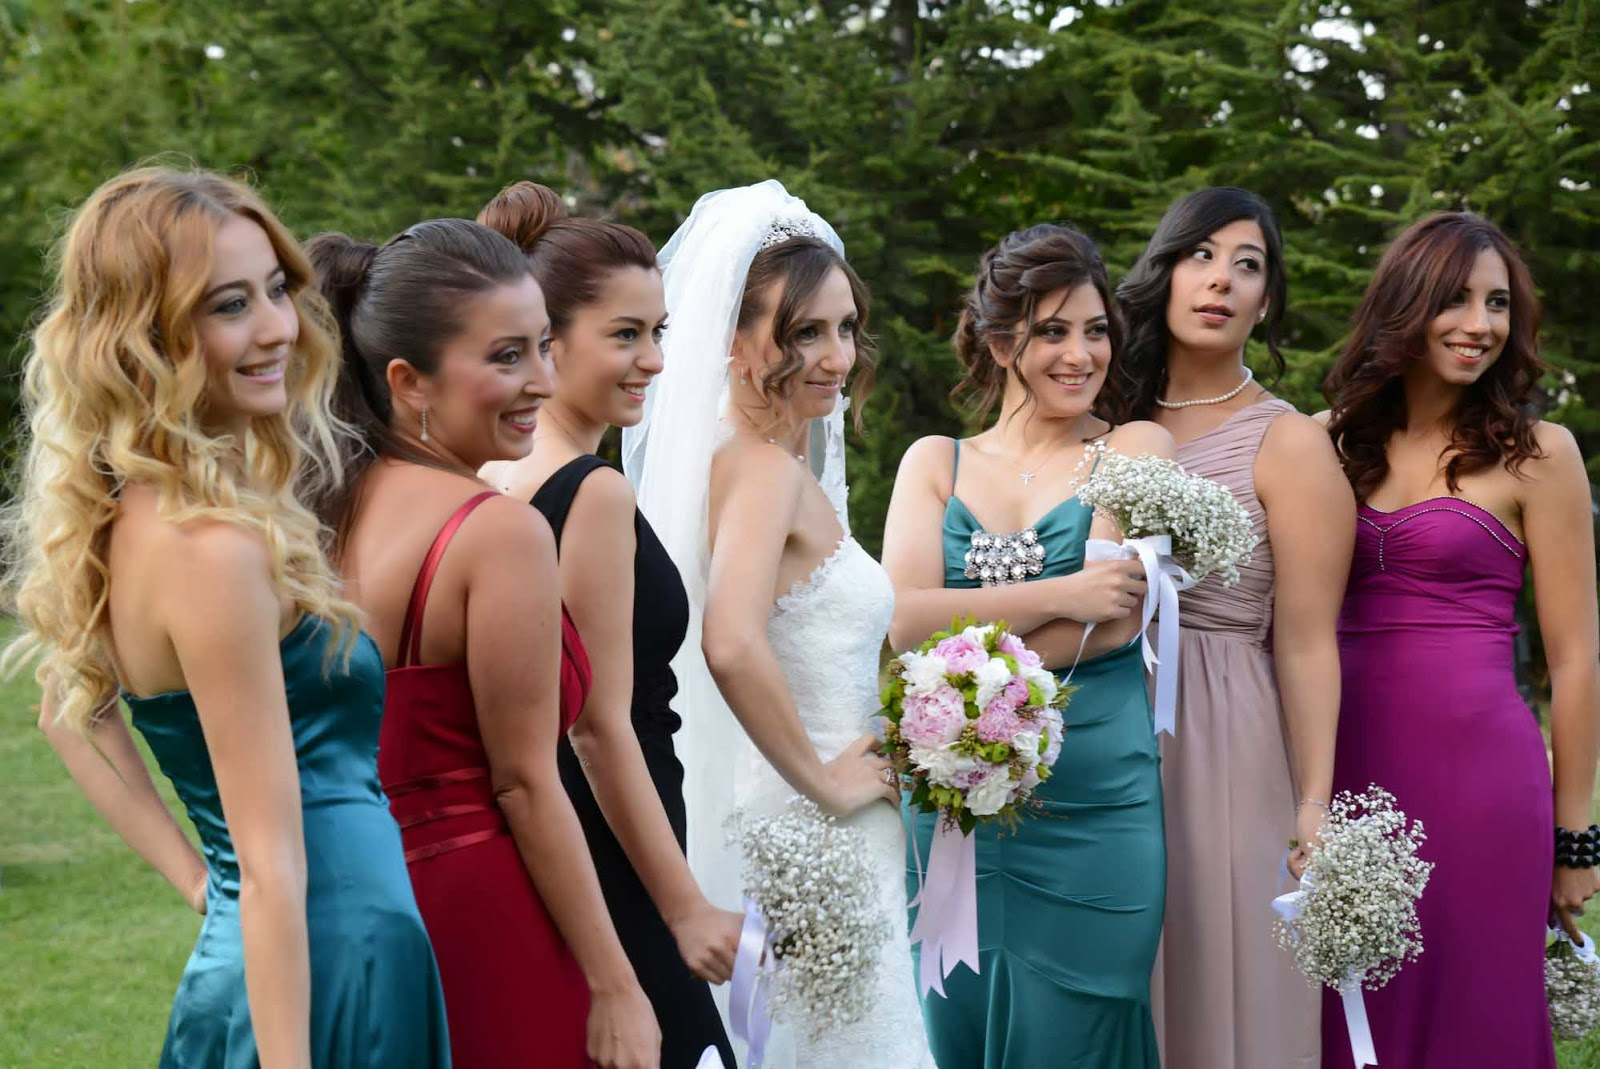 ankara single catholic girls Look around for information on how to plan a catholic wedding, dating tips, online dating websites, books about the single life, prayers for single catholics, religious vocation discernment resources, and much more.